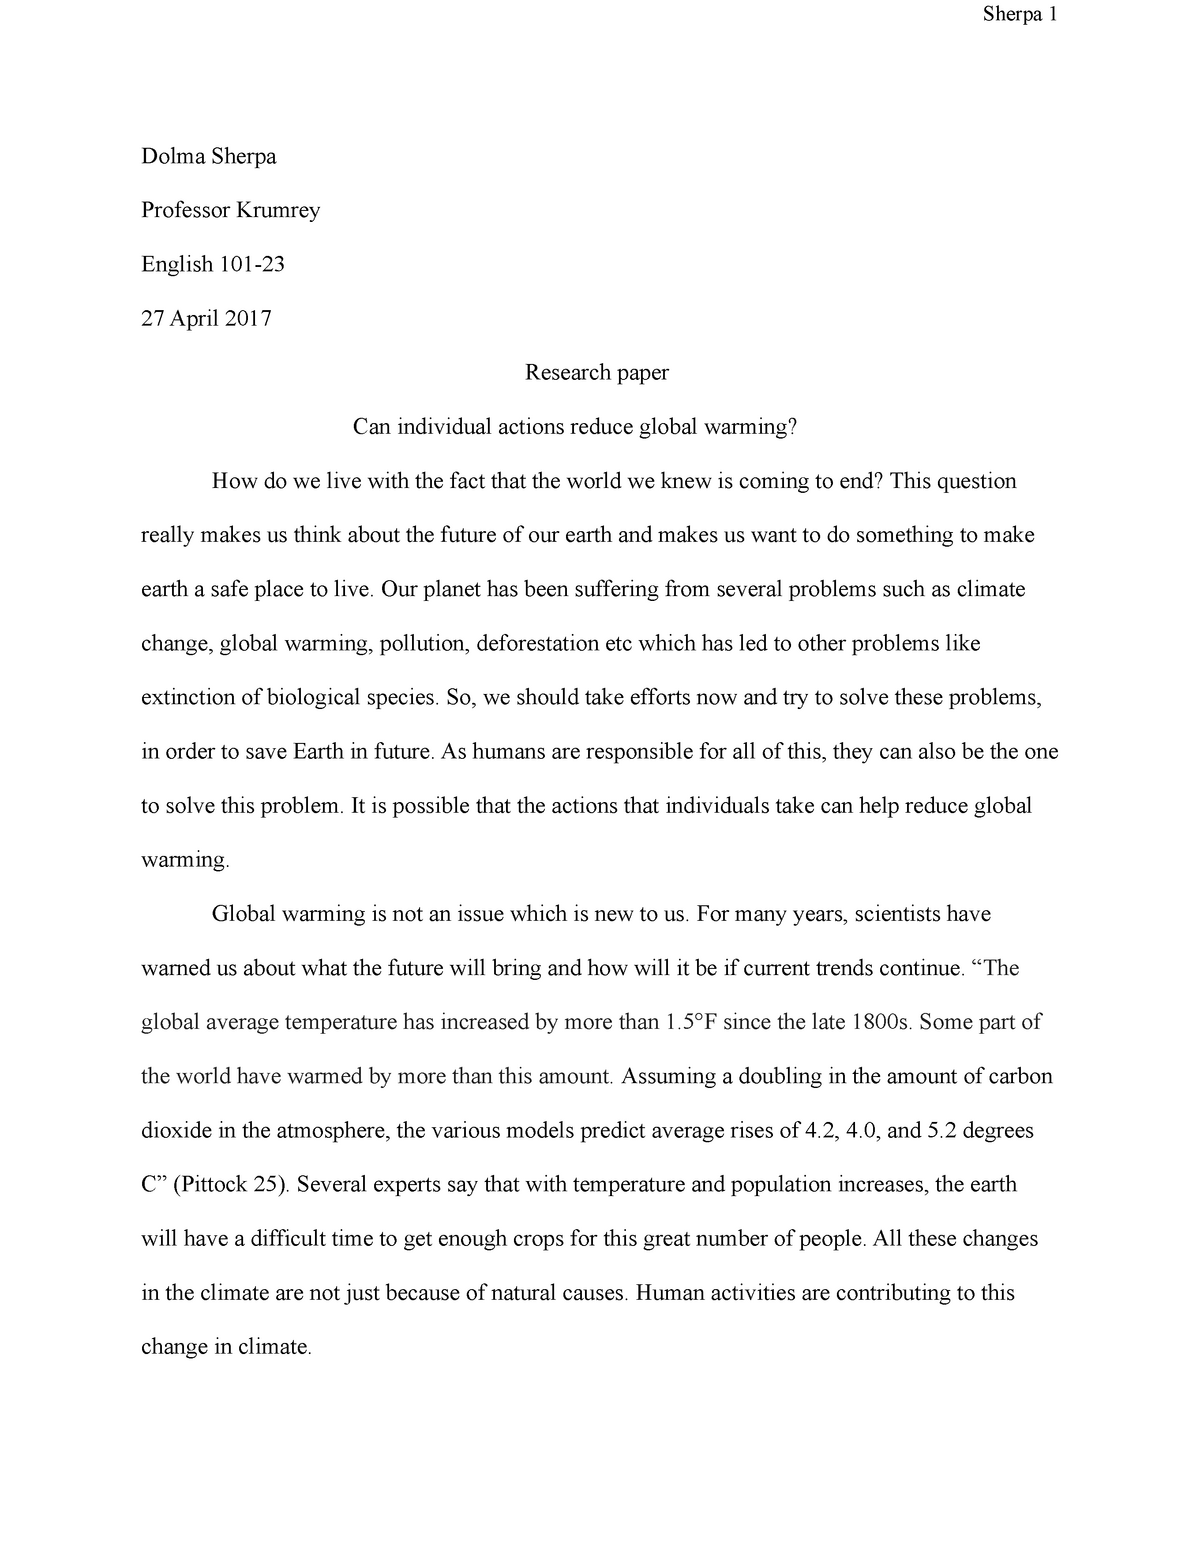 Global warming college research paper pay for marketing business plan